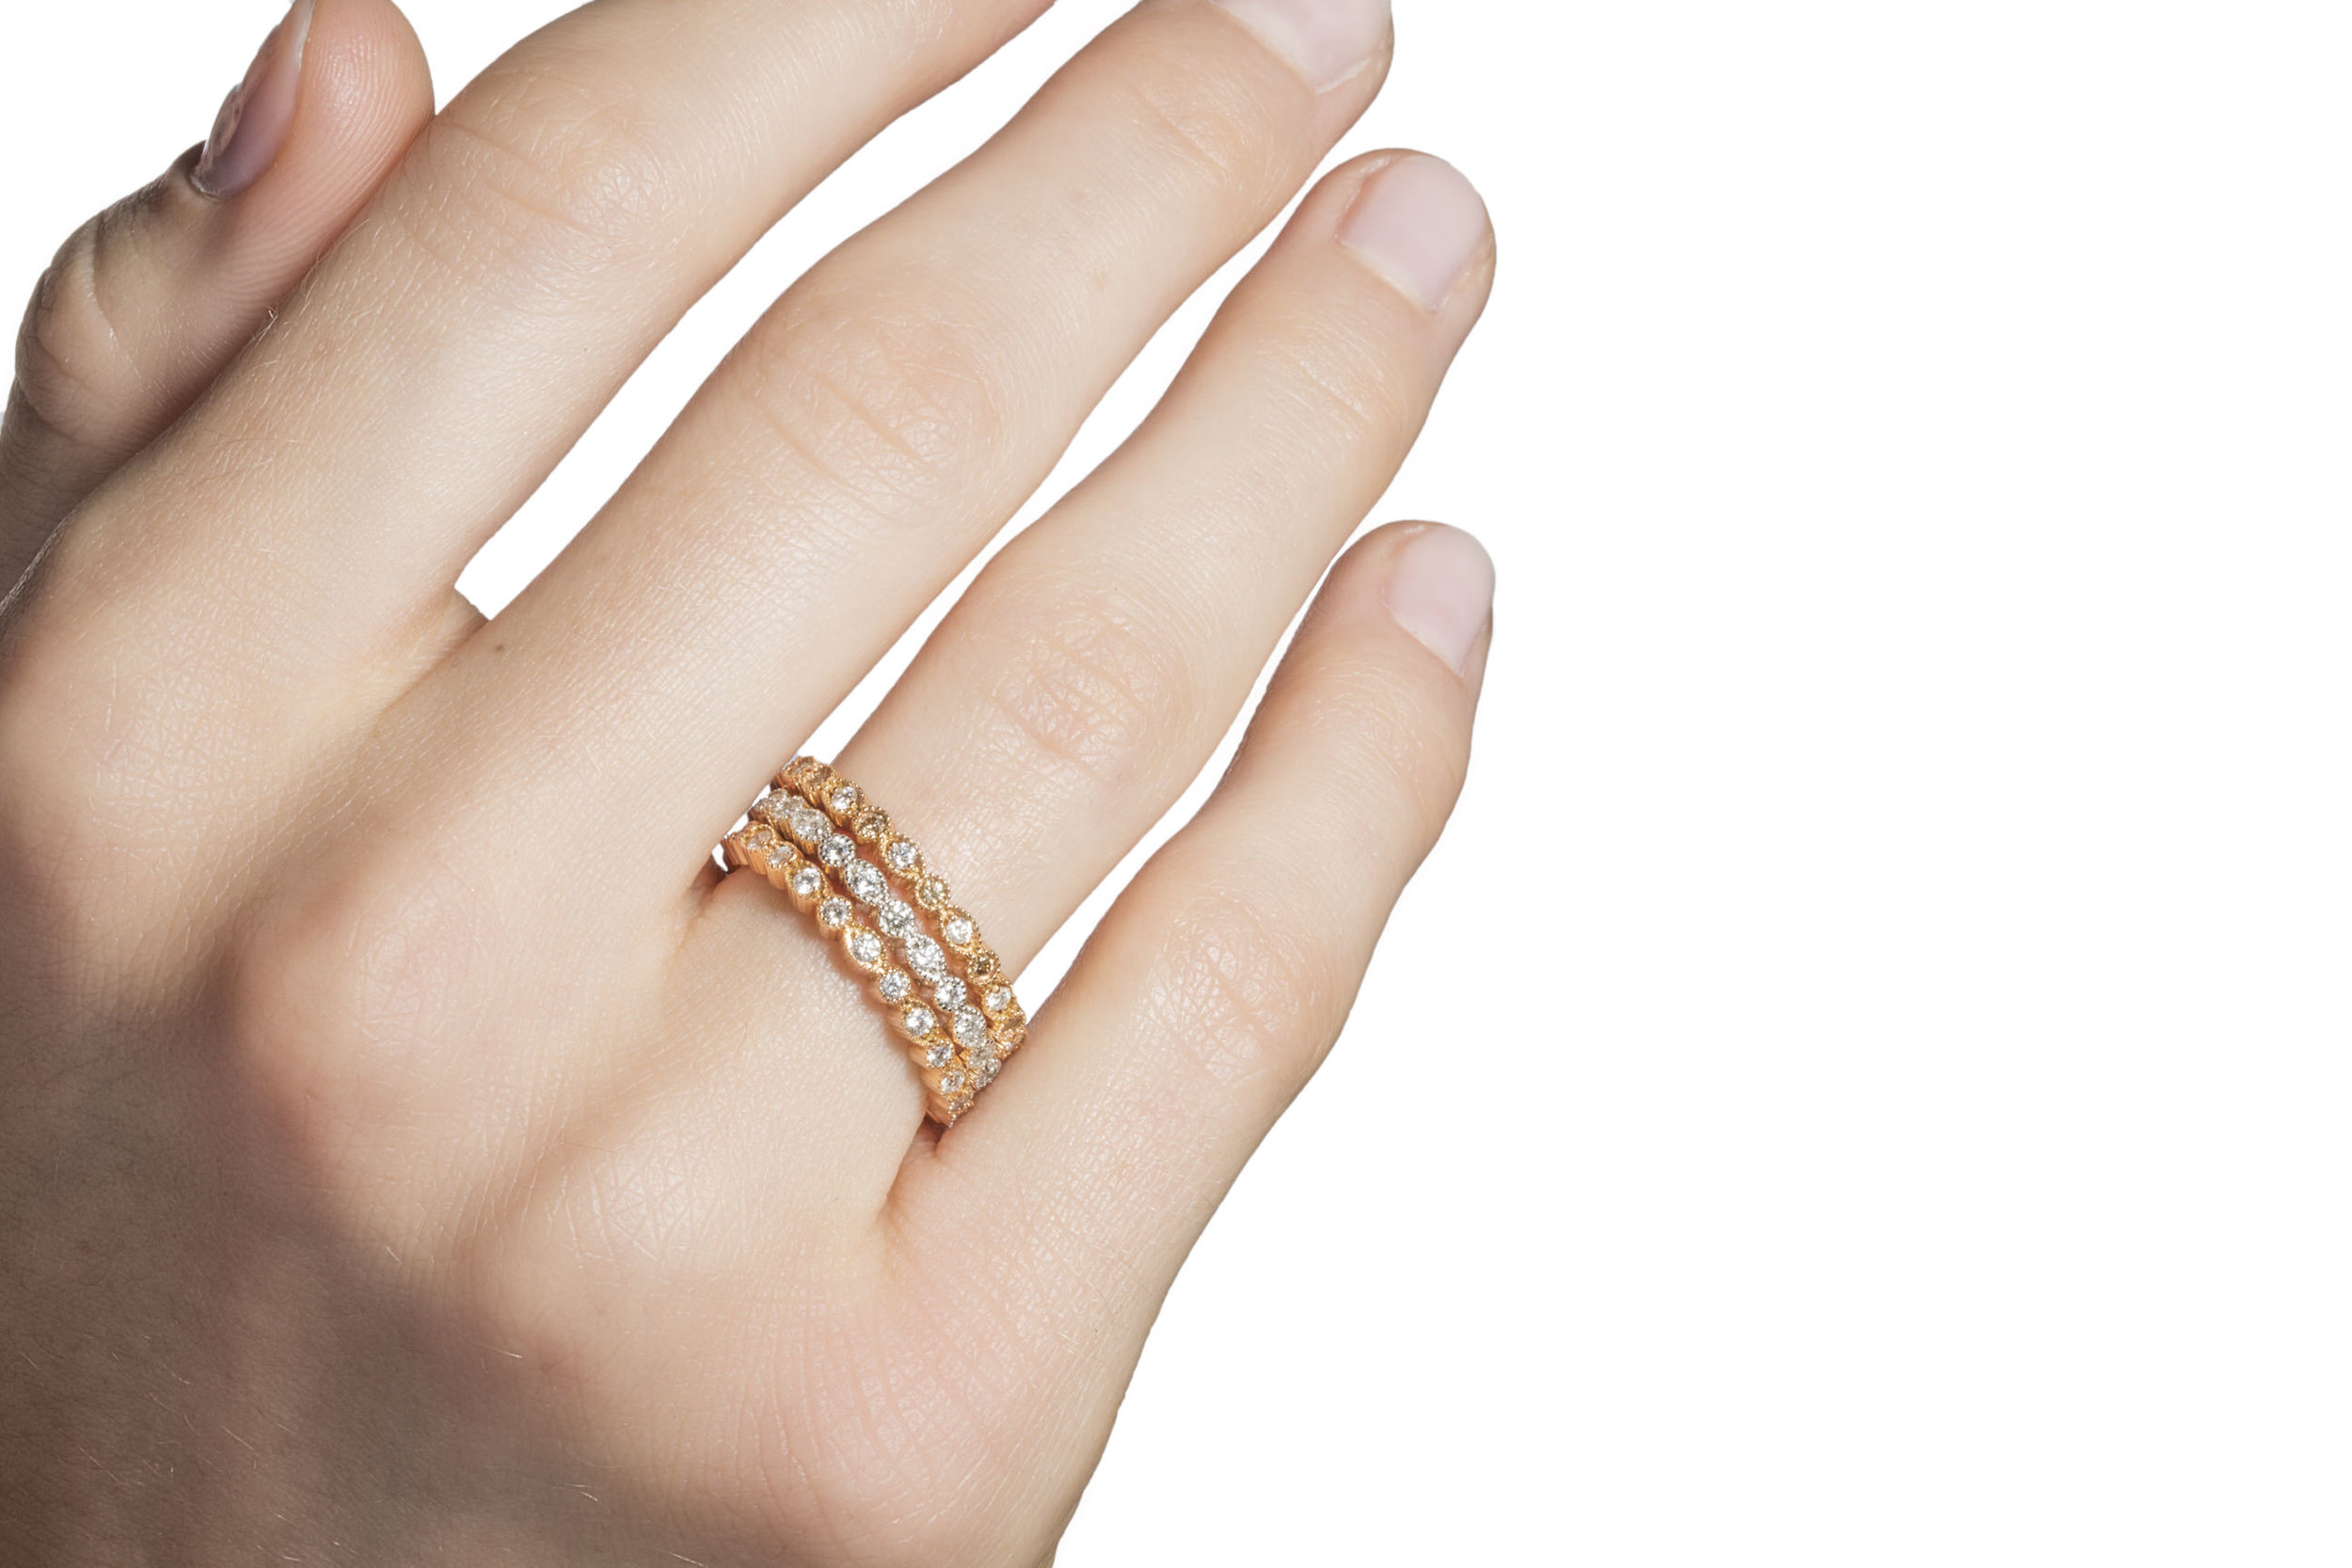 StackingRings1.jpg